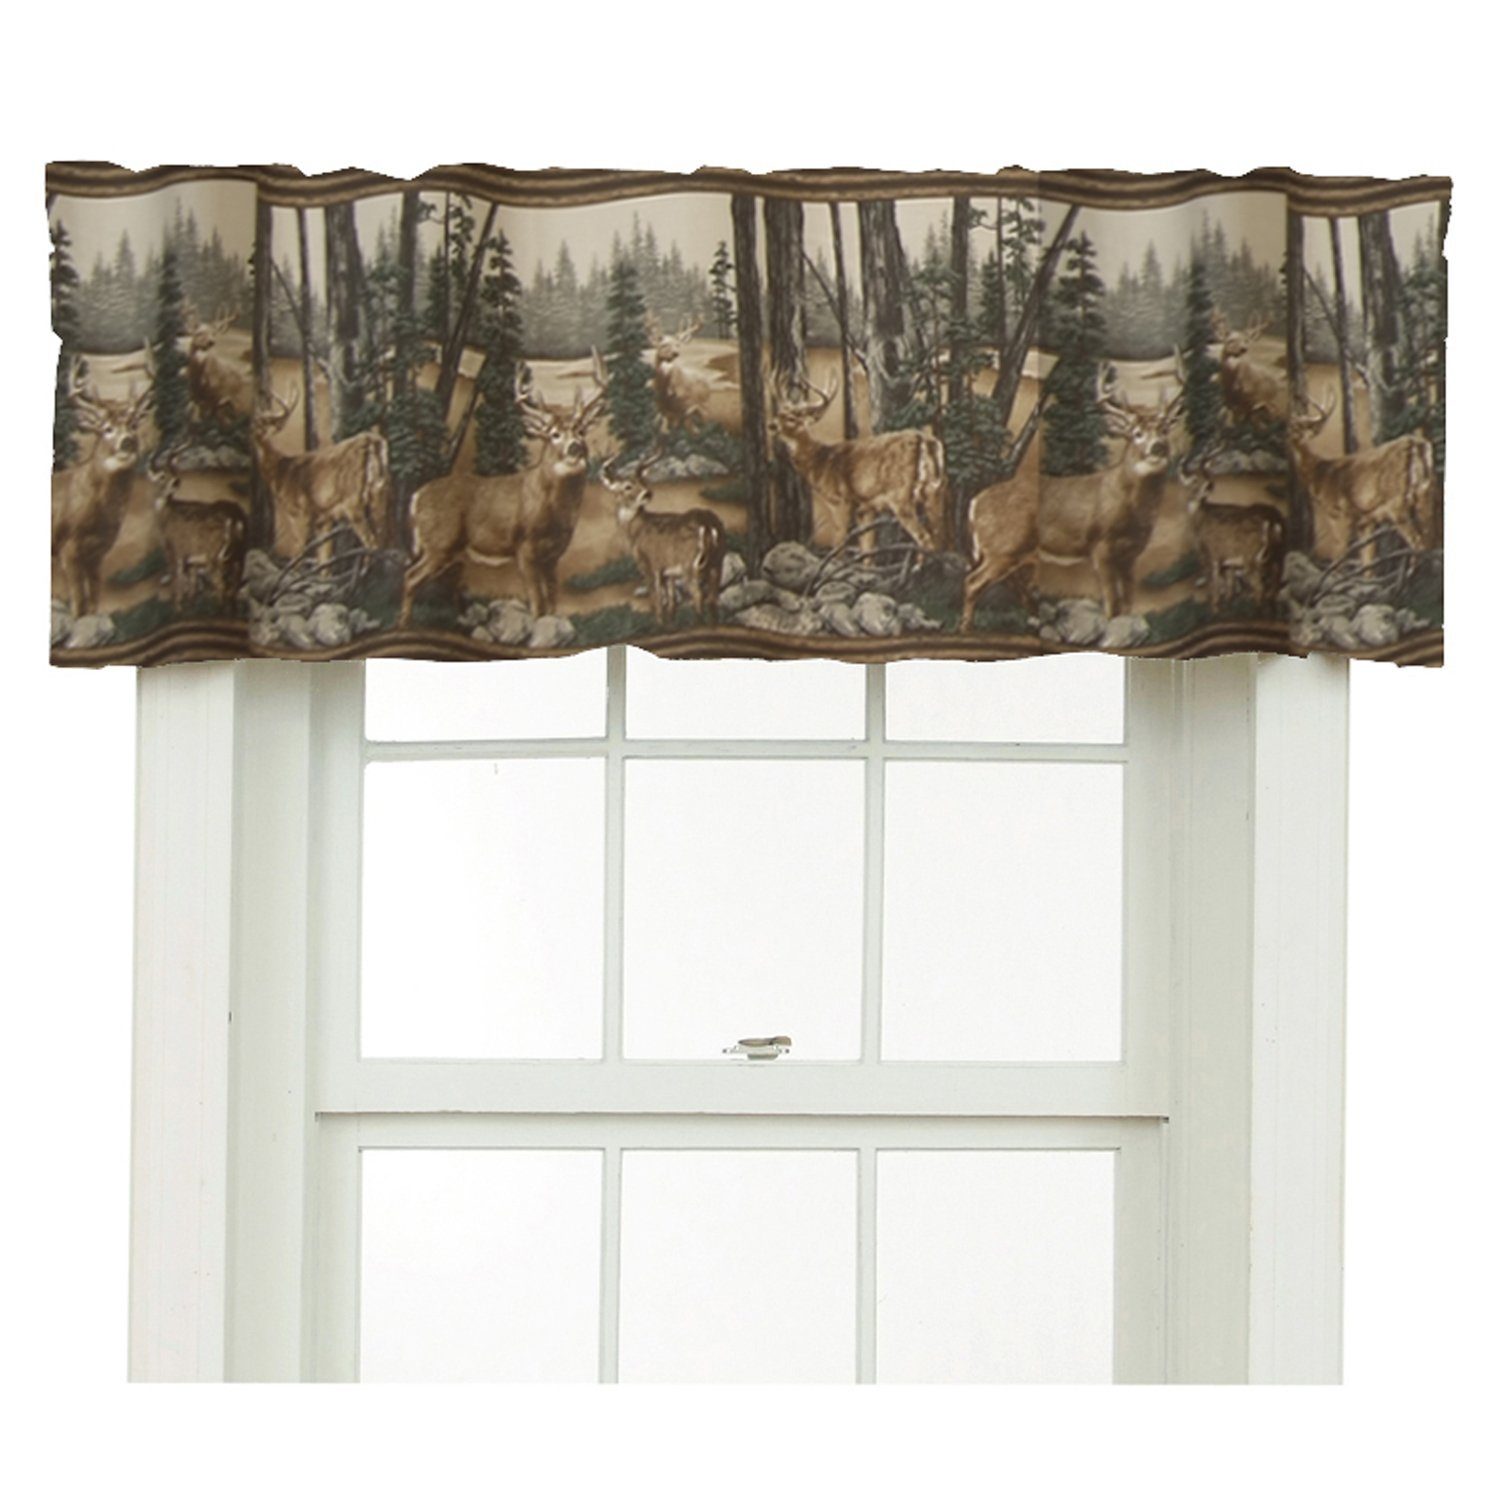 Rustic Whitetail Deer Bedding And Curtains